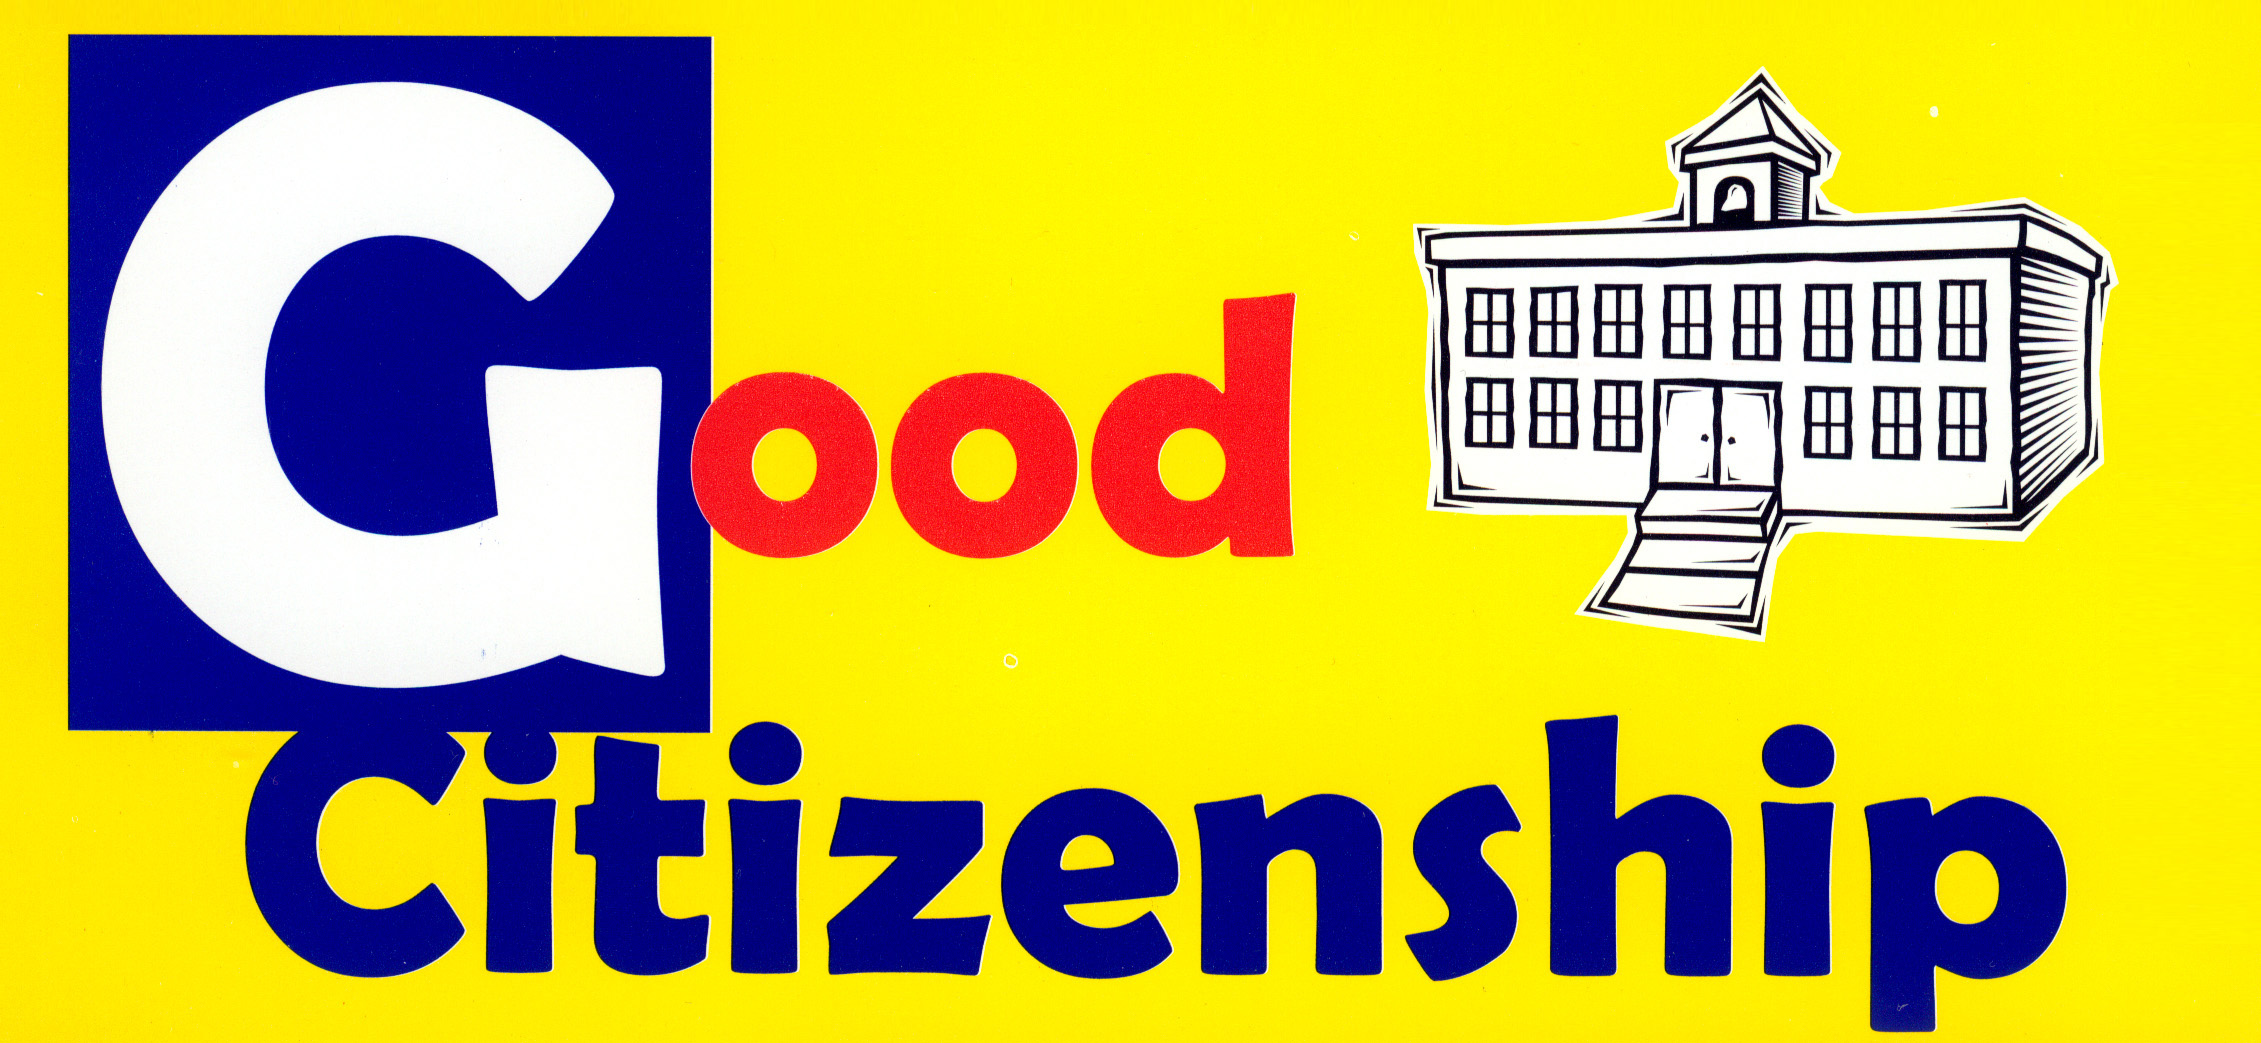 Good Citizenship.